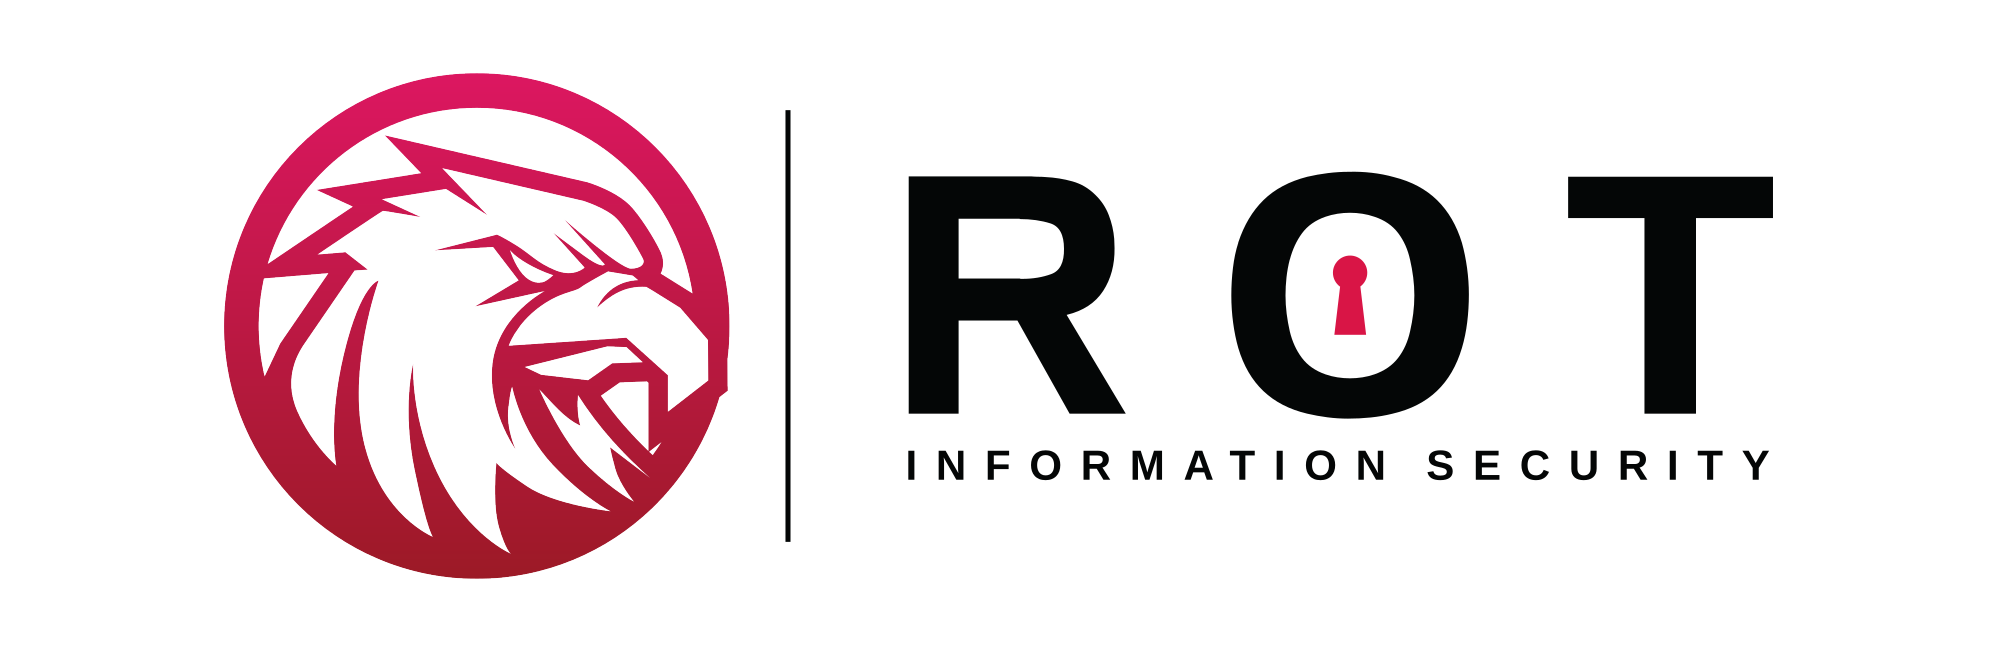 ROT Information Security